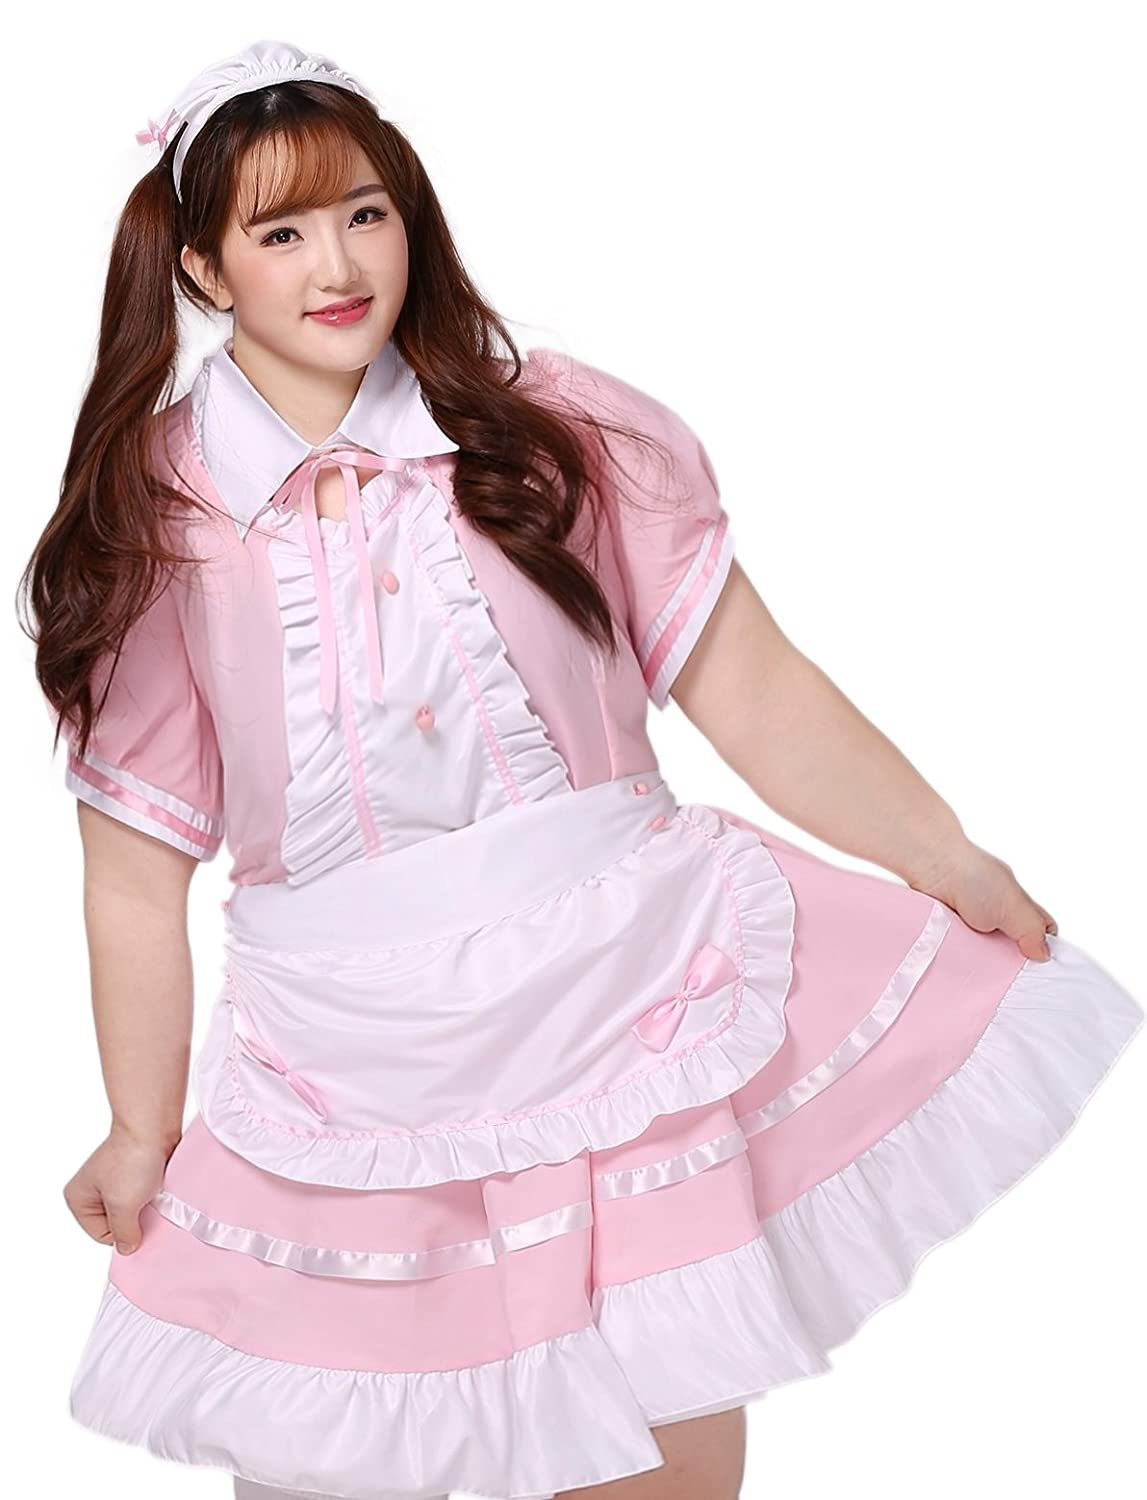 BS Japan Anime Uniforms [Plus size Lolita French Maid] Pink ...